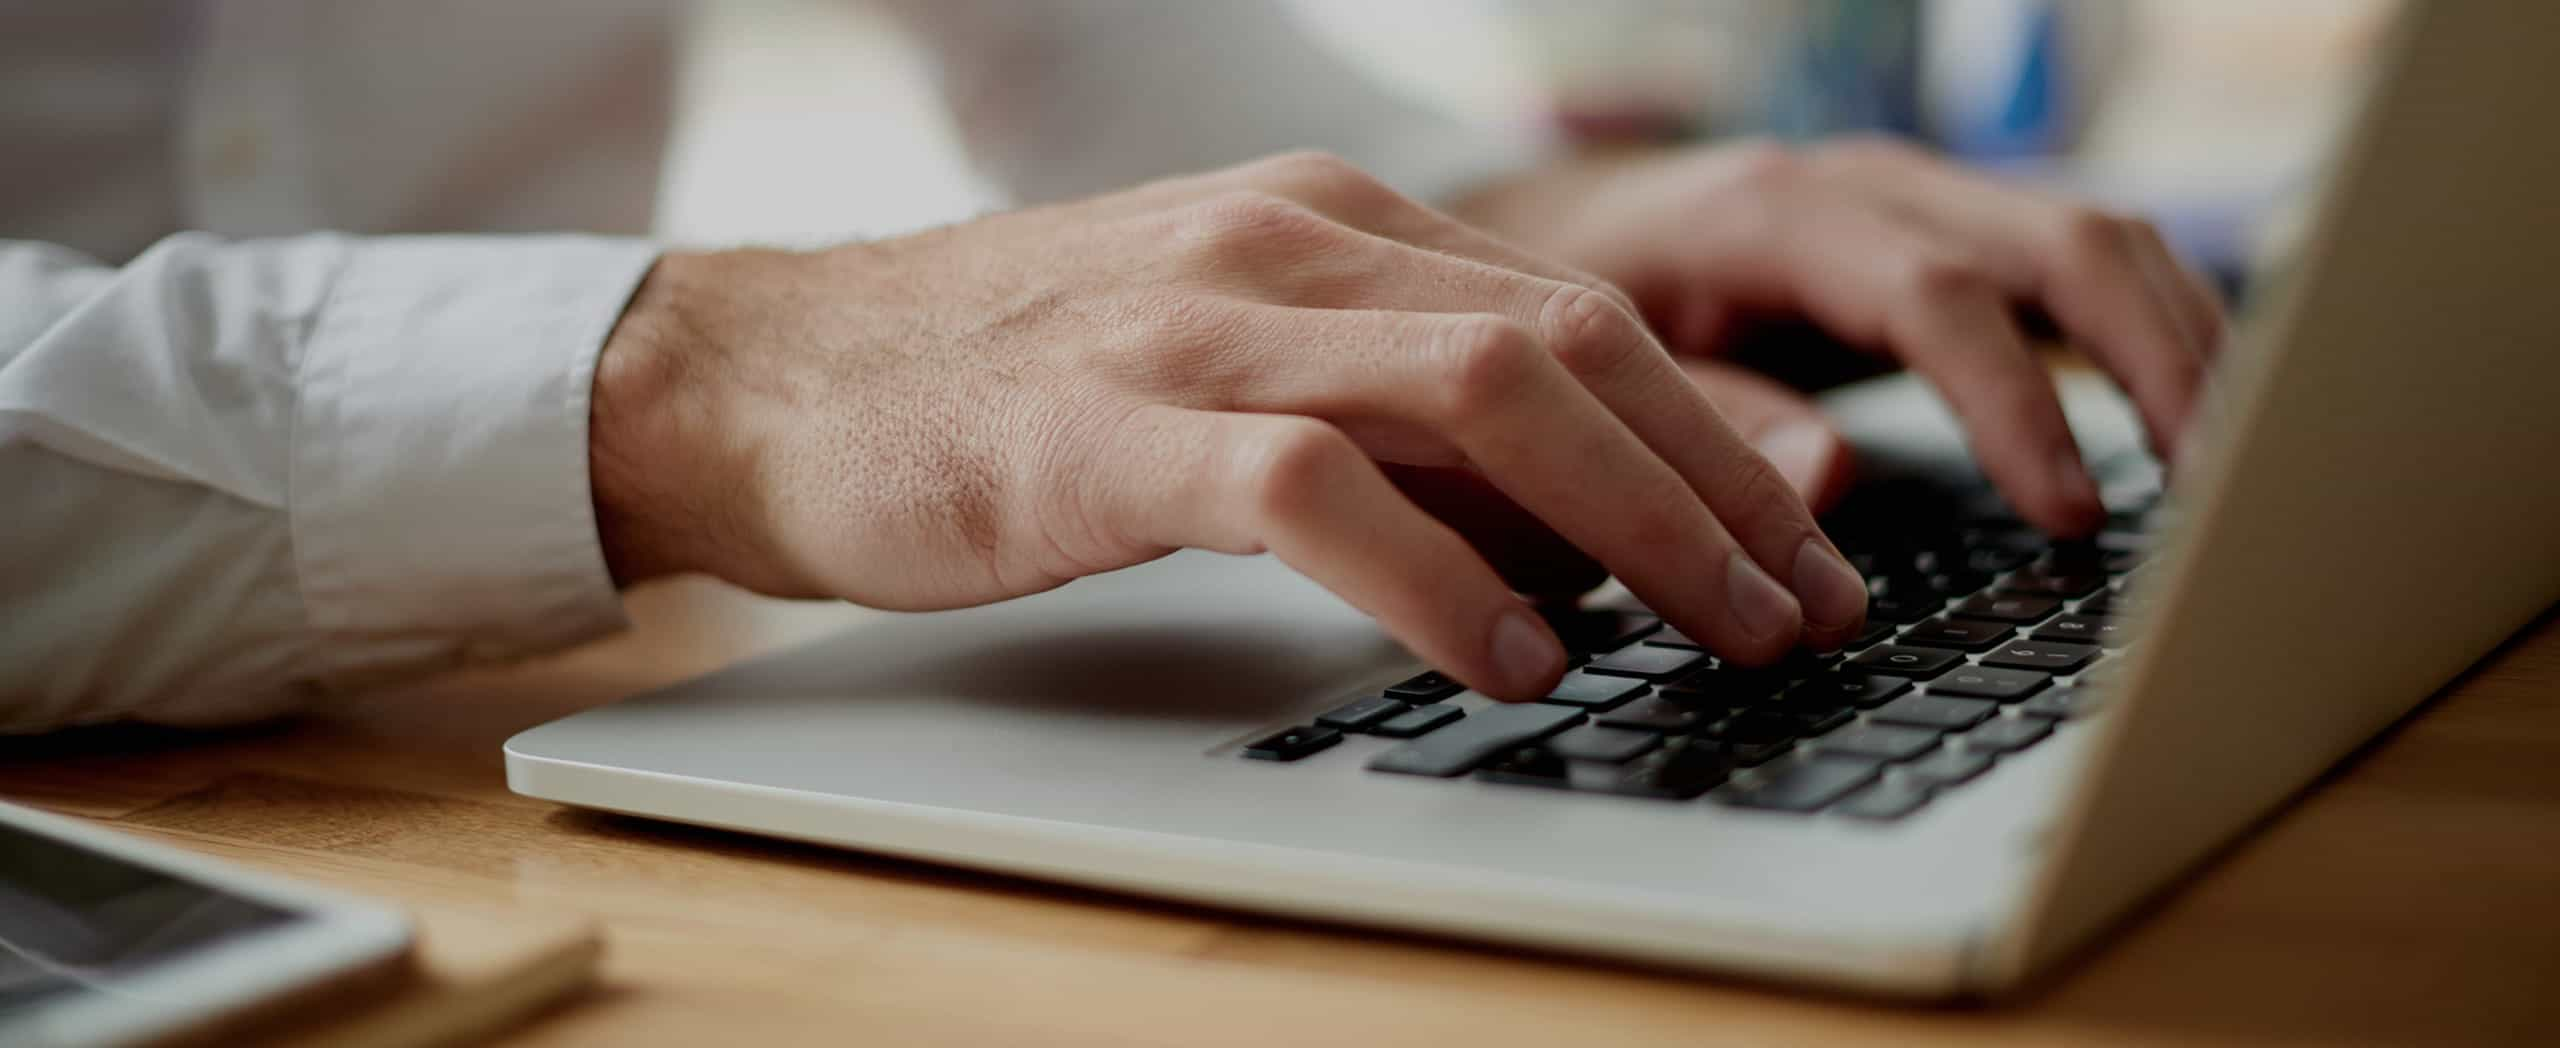 Image of person using a laptop